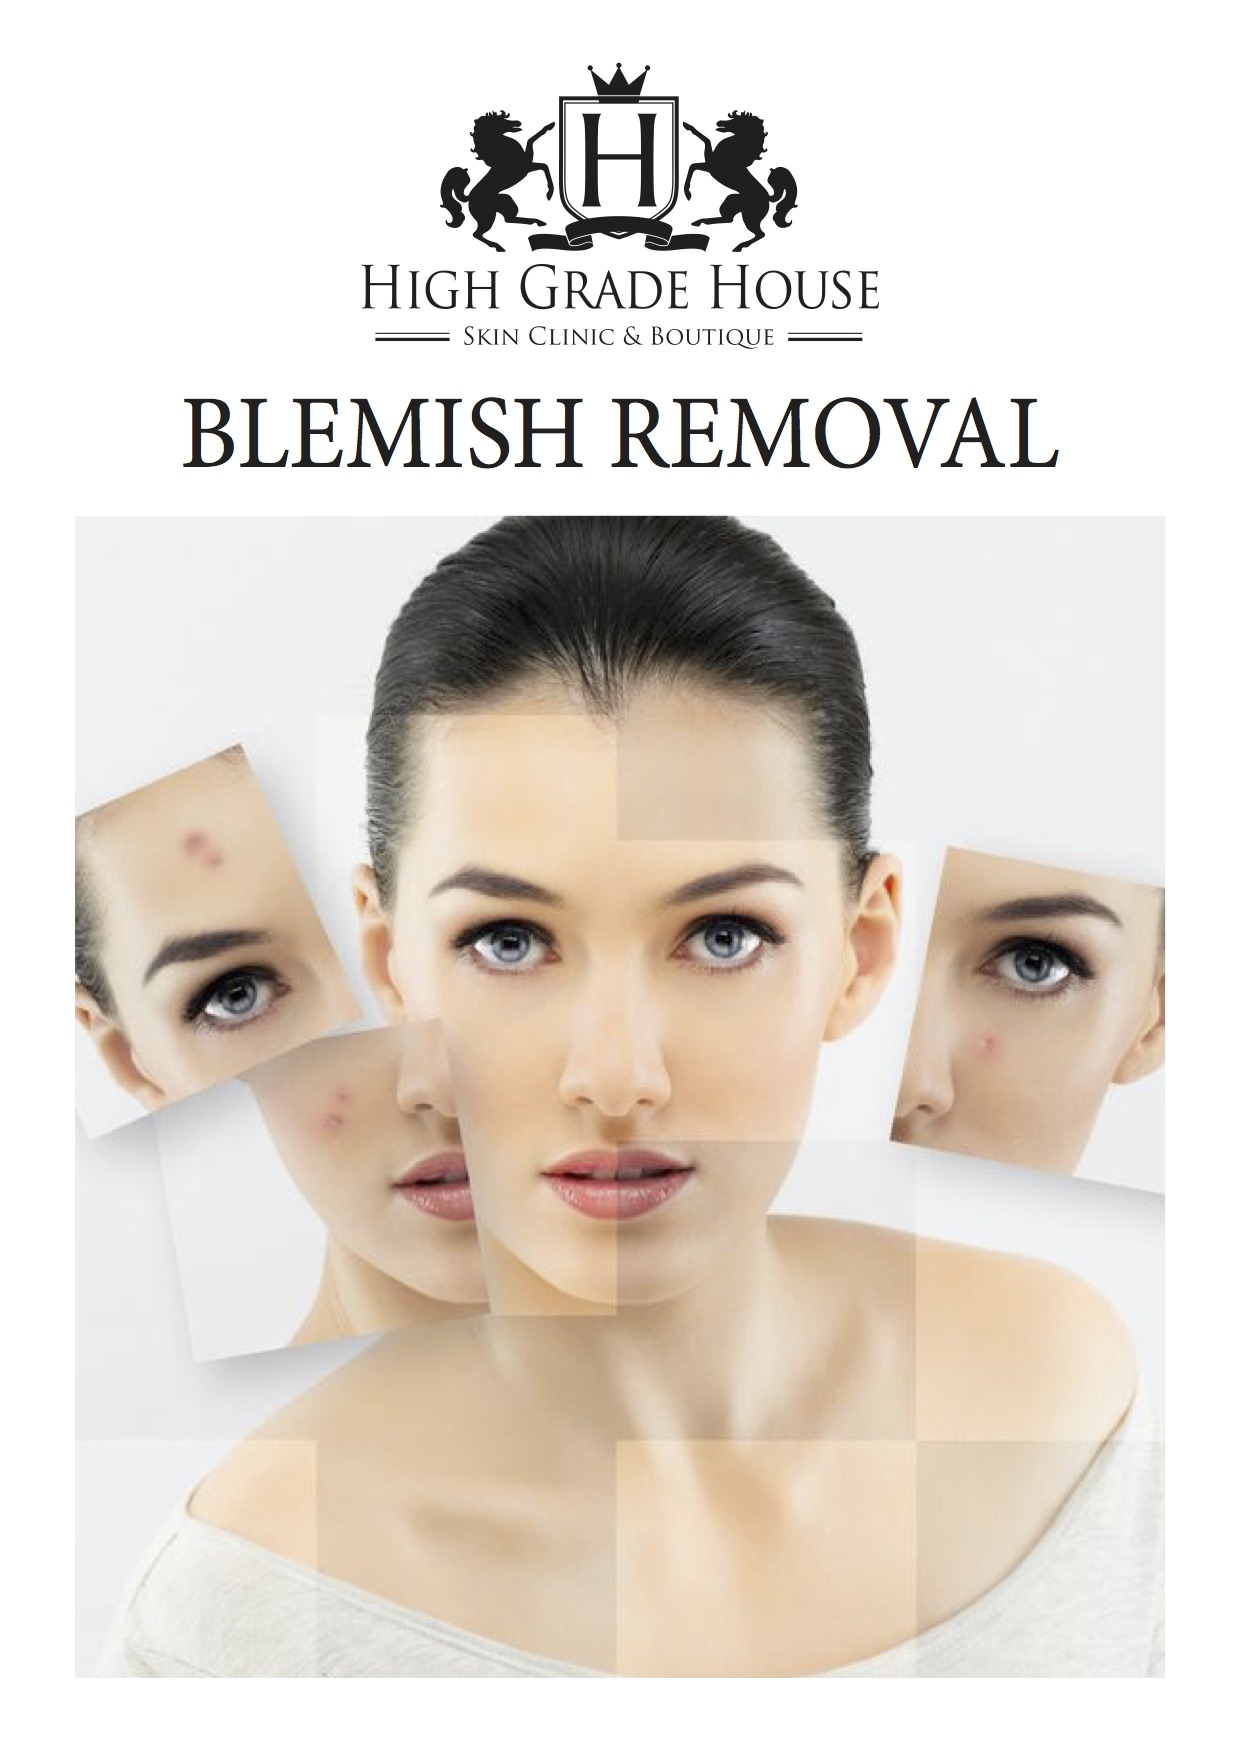 High Grade House Skin Clinic